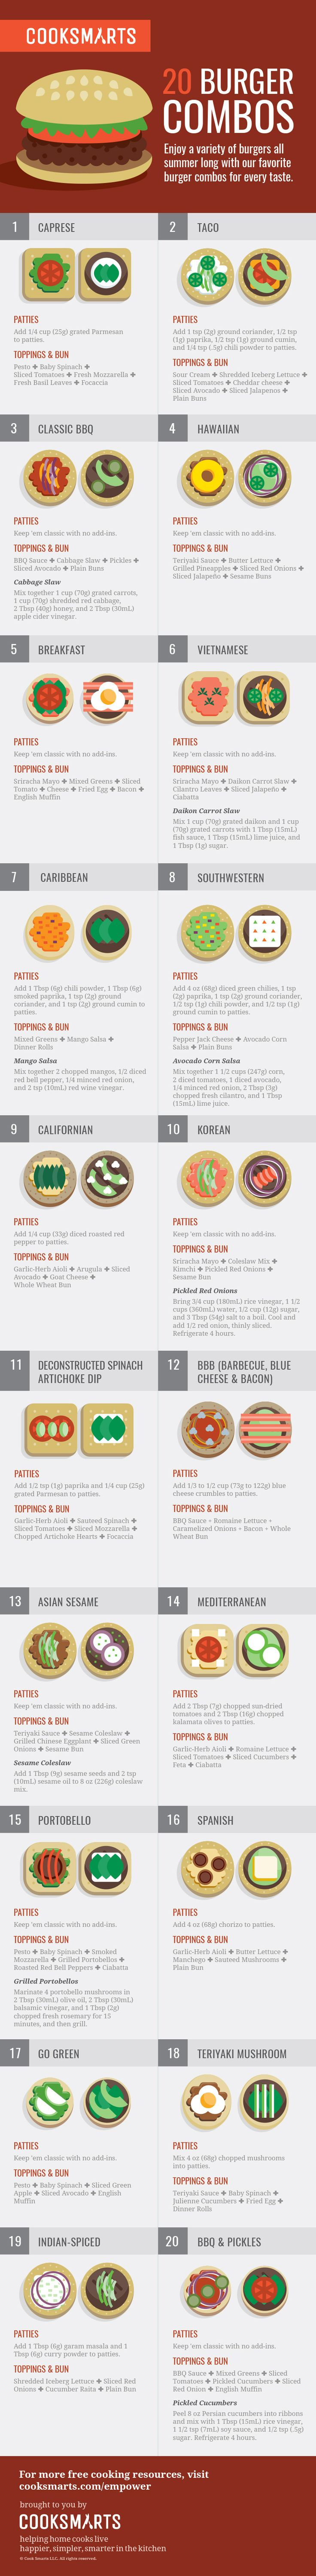 Build a Burger: 20 Delicious Combos to Try - Album on Imgur